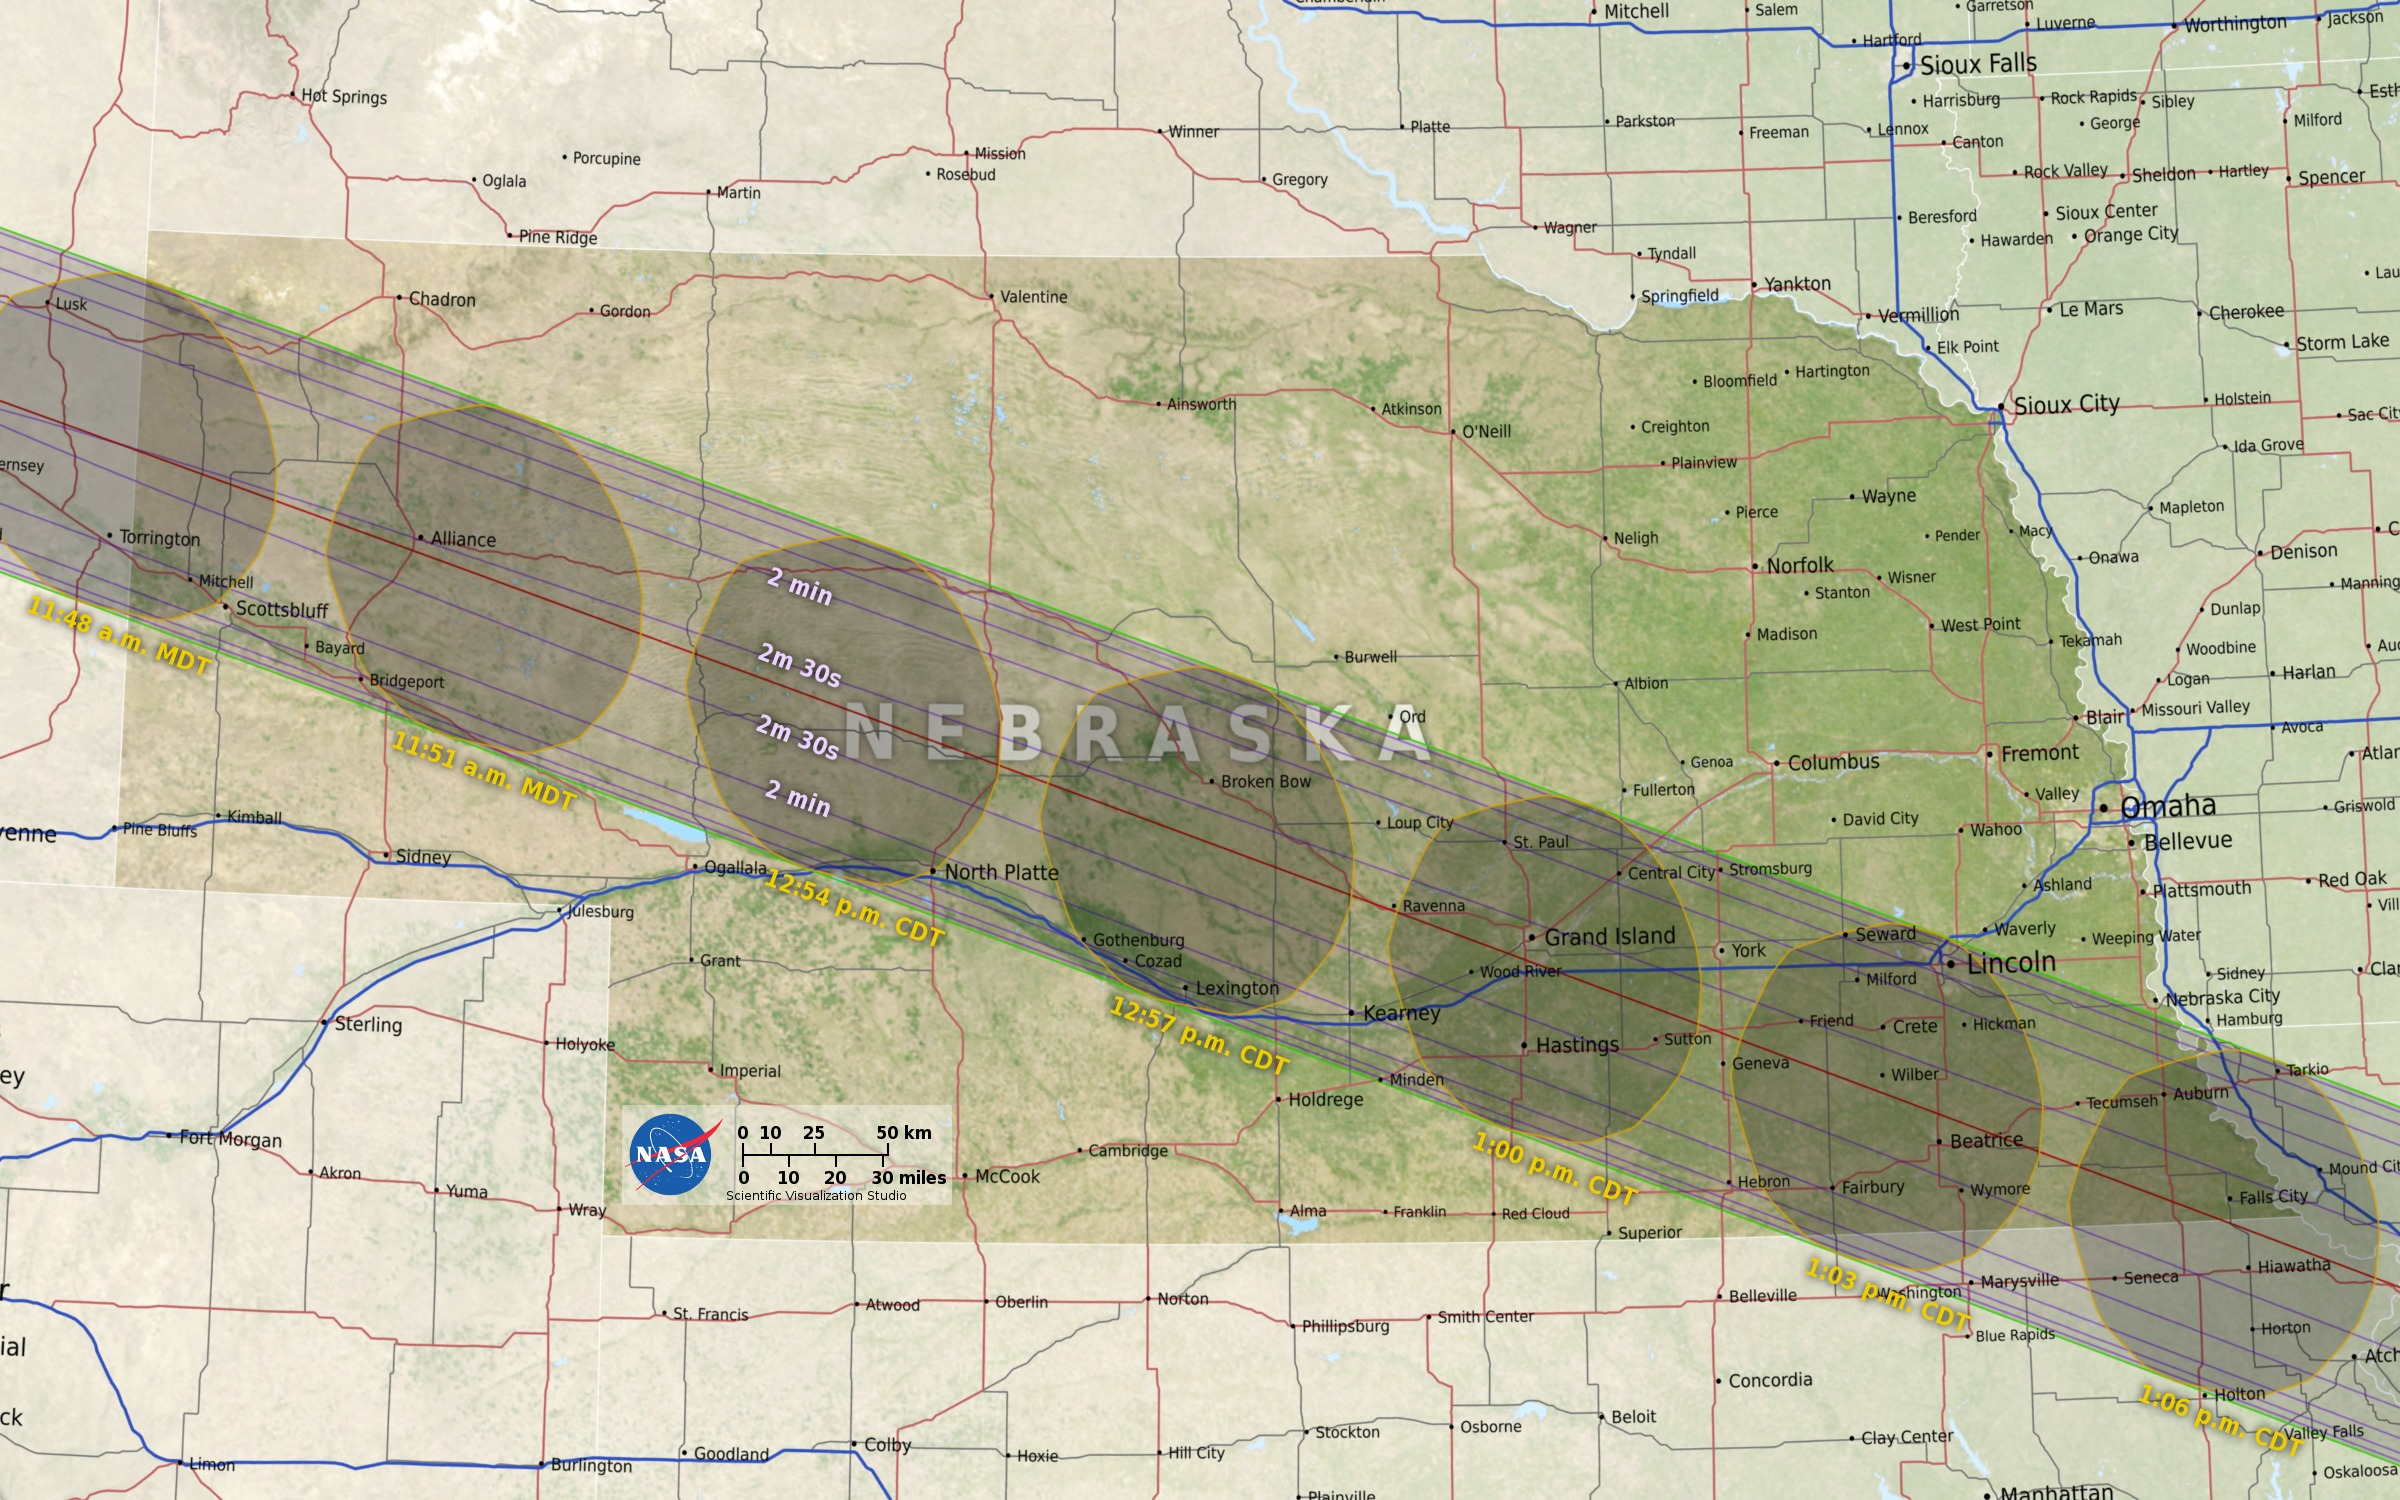 2017 Umbra Path of Totality at US scale